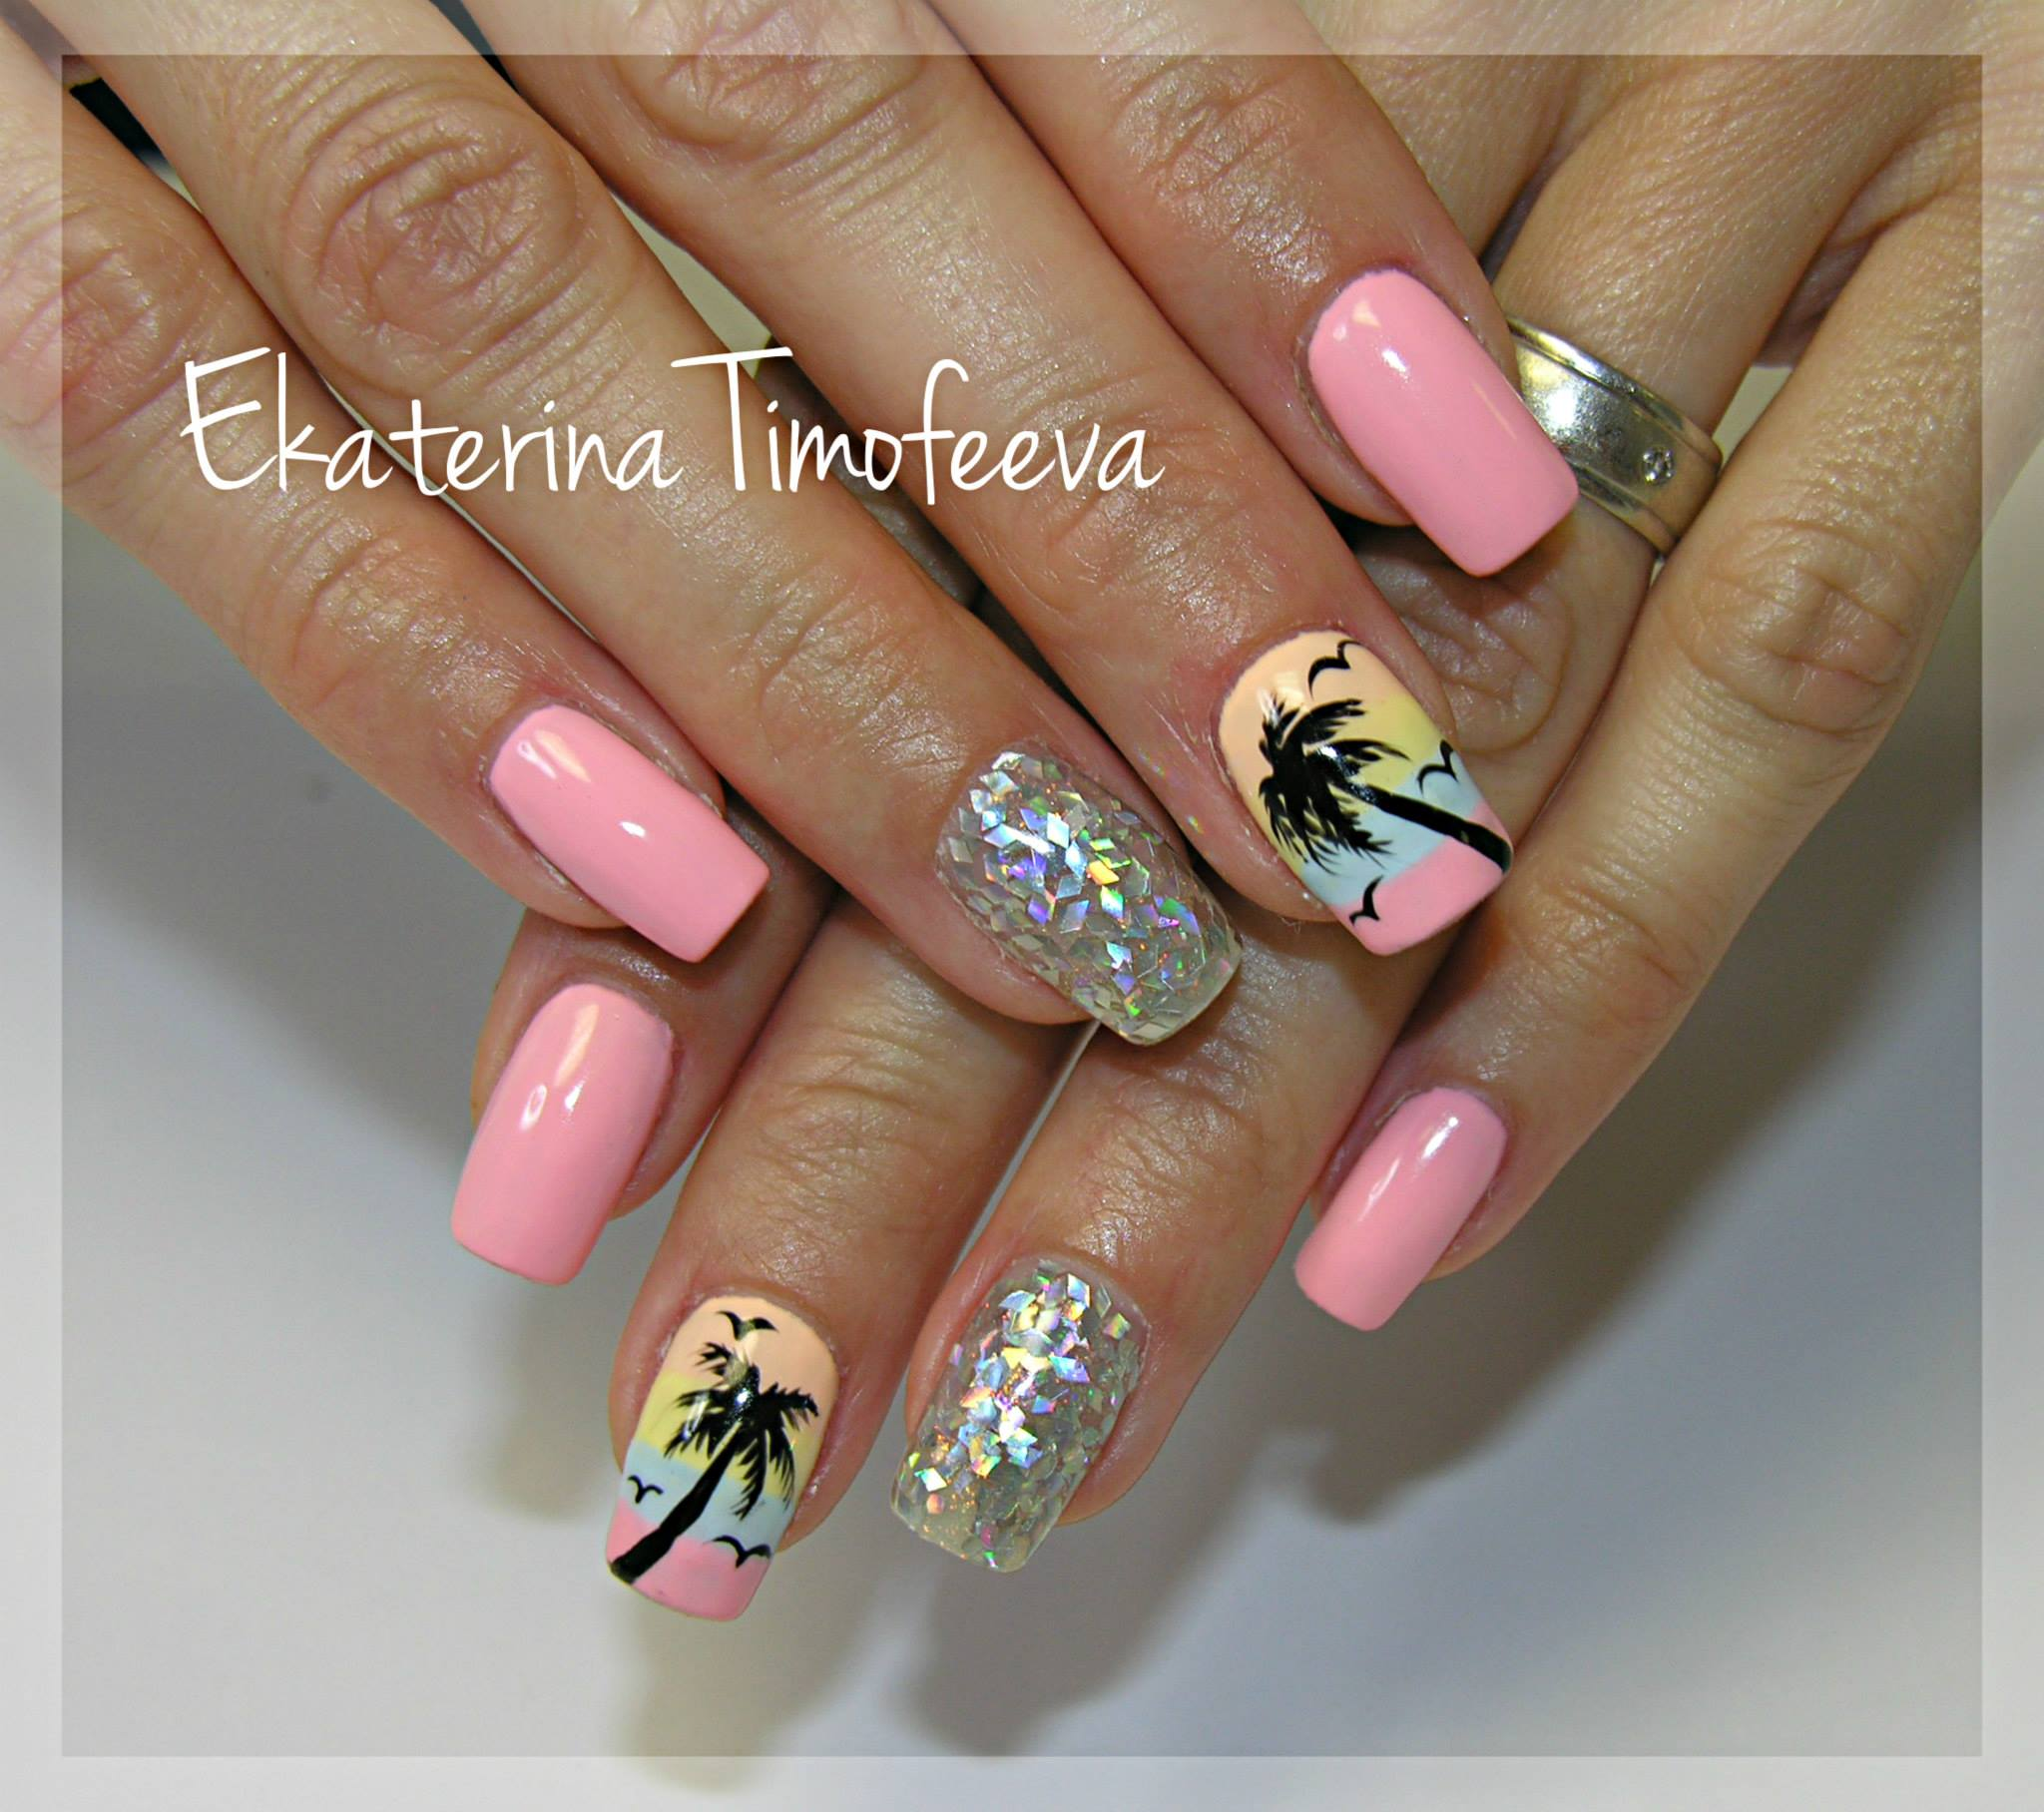 Palm tree nail art - The Best Images | BestArtNails.com